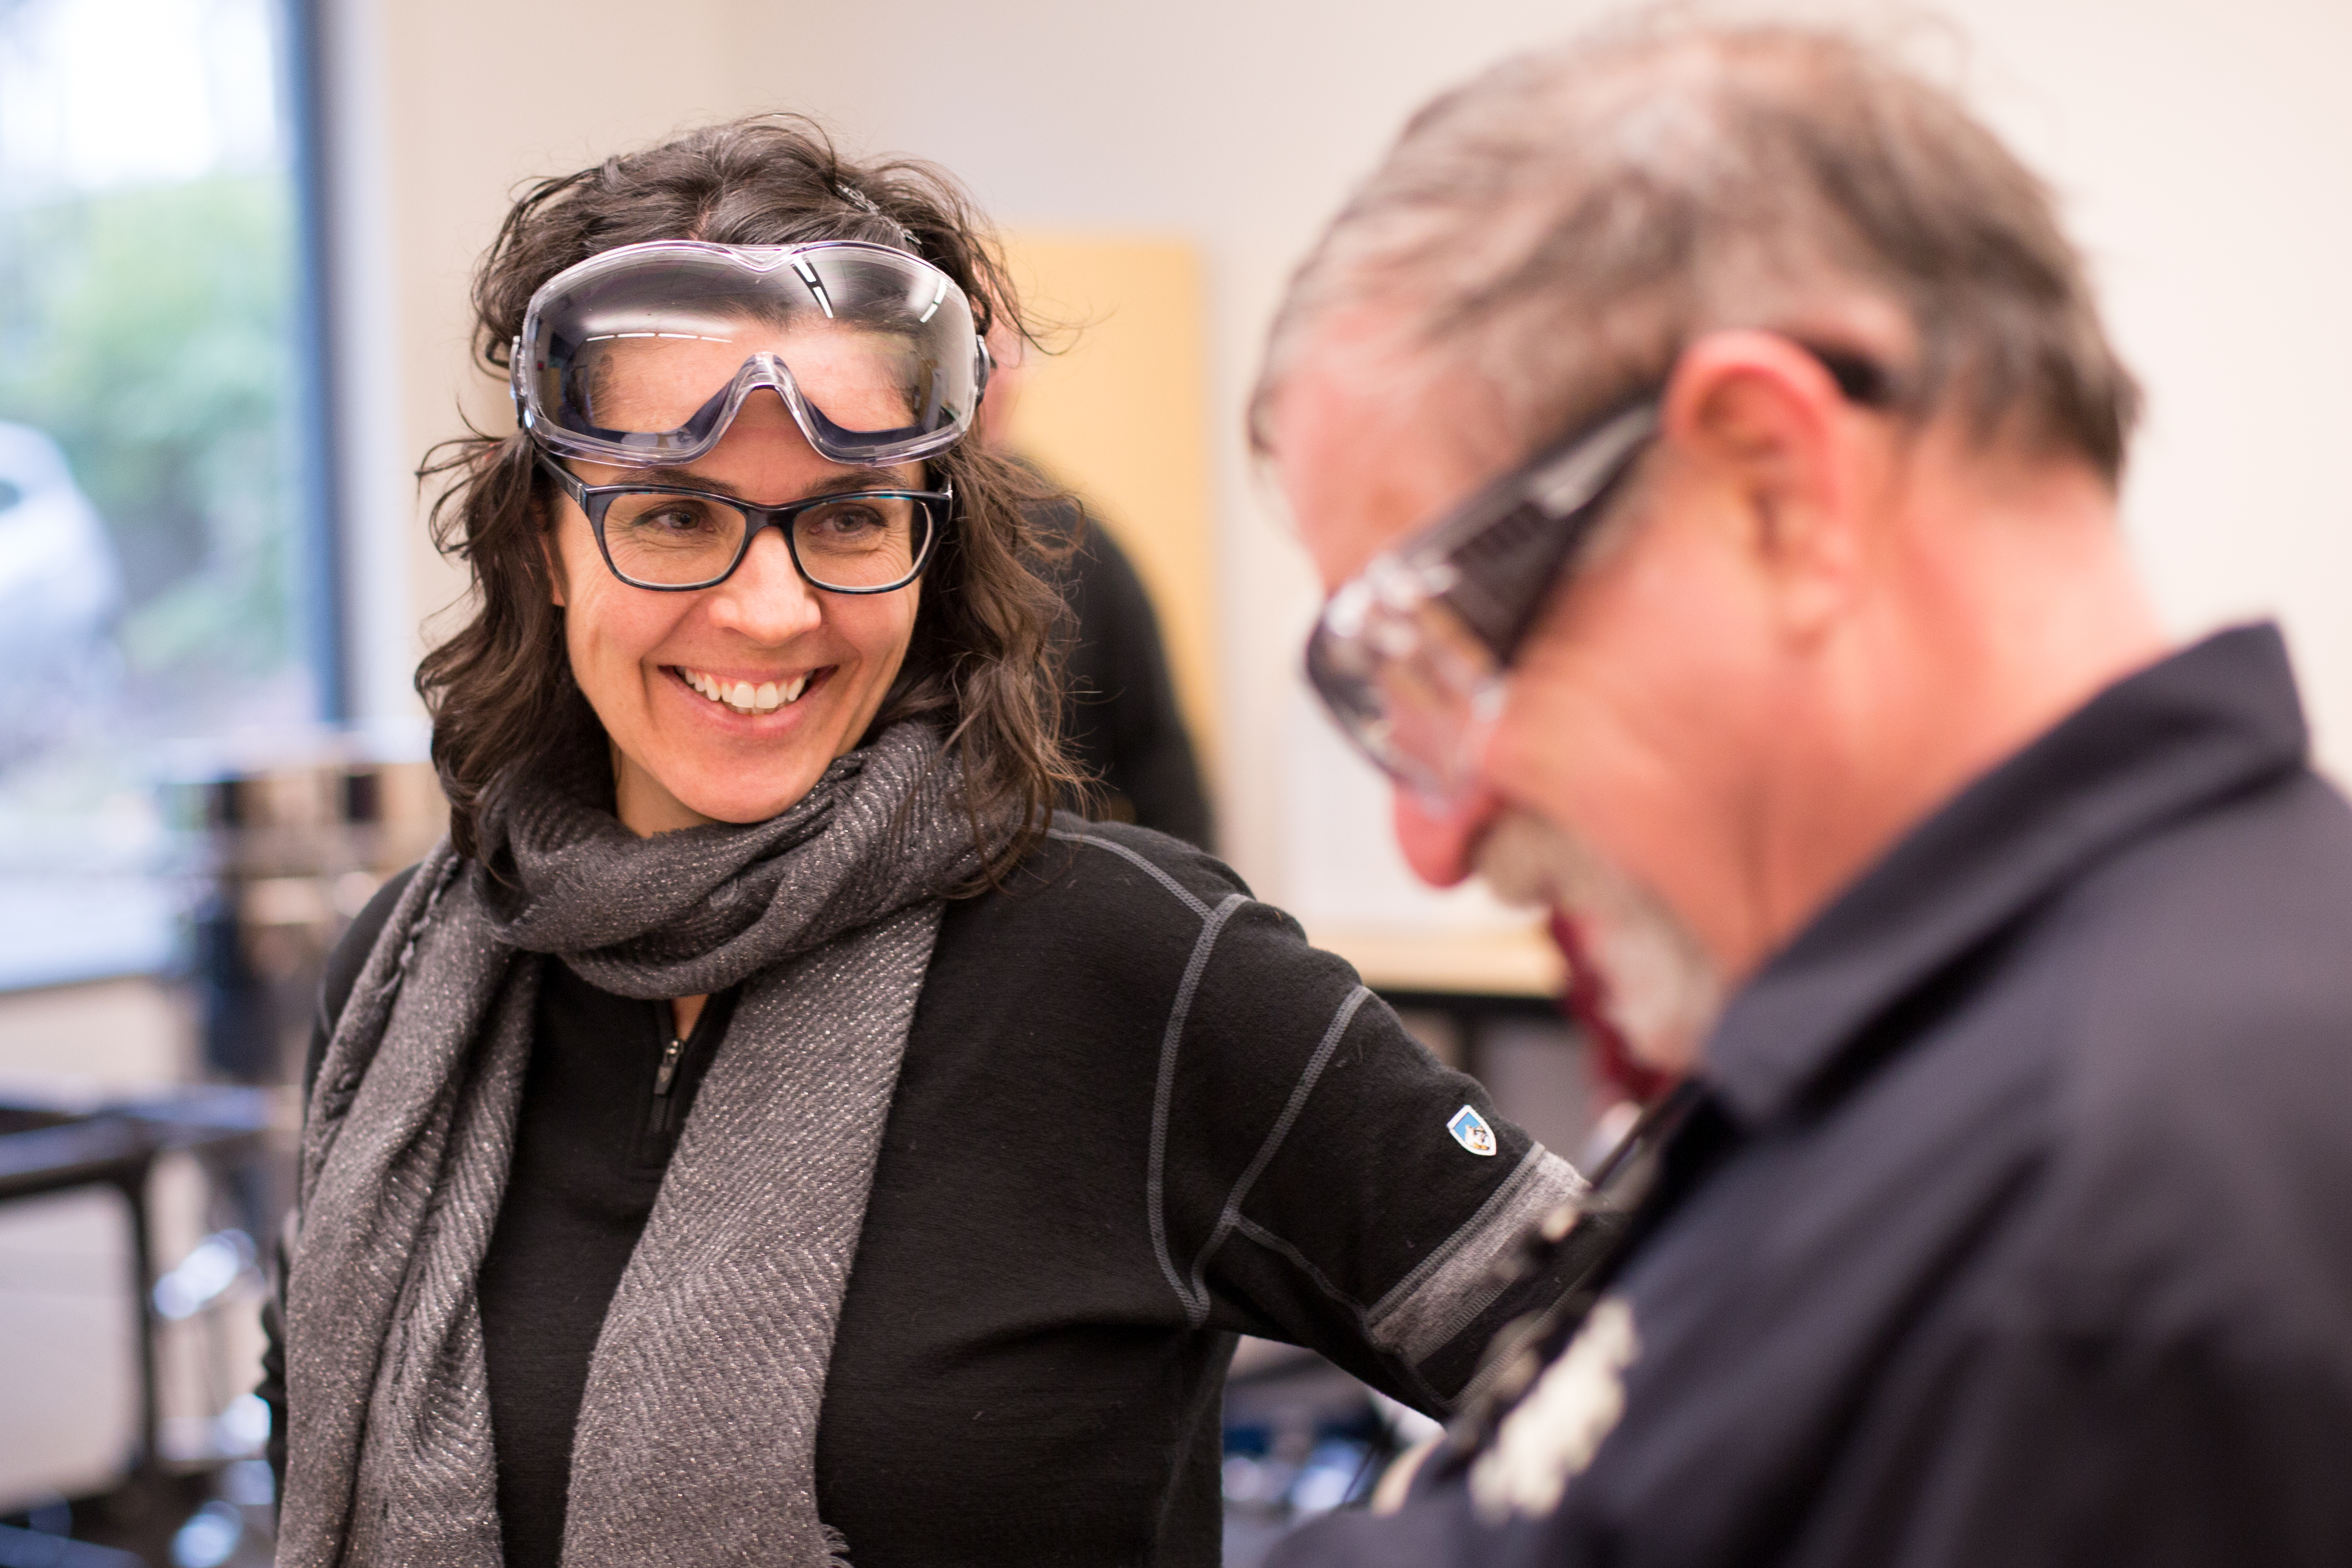 SPSCC student Myriam Boyer in the lab with goggles on head